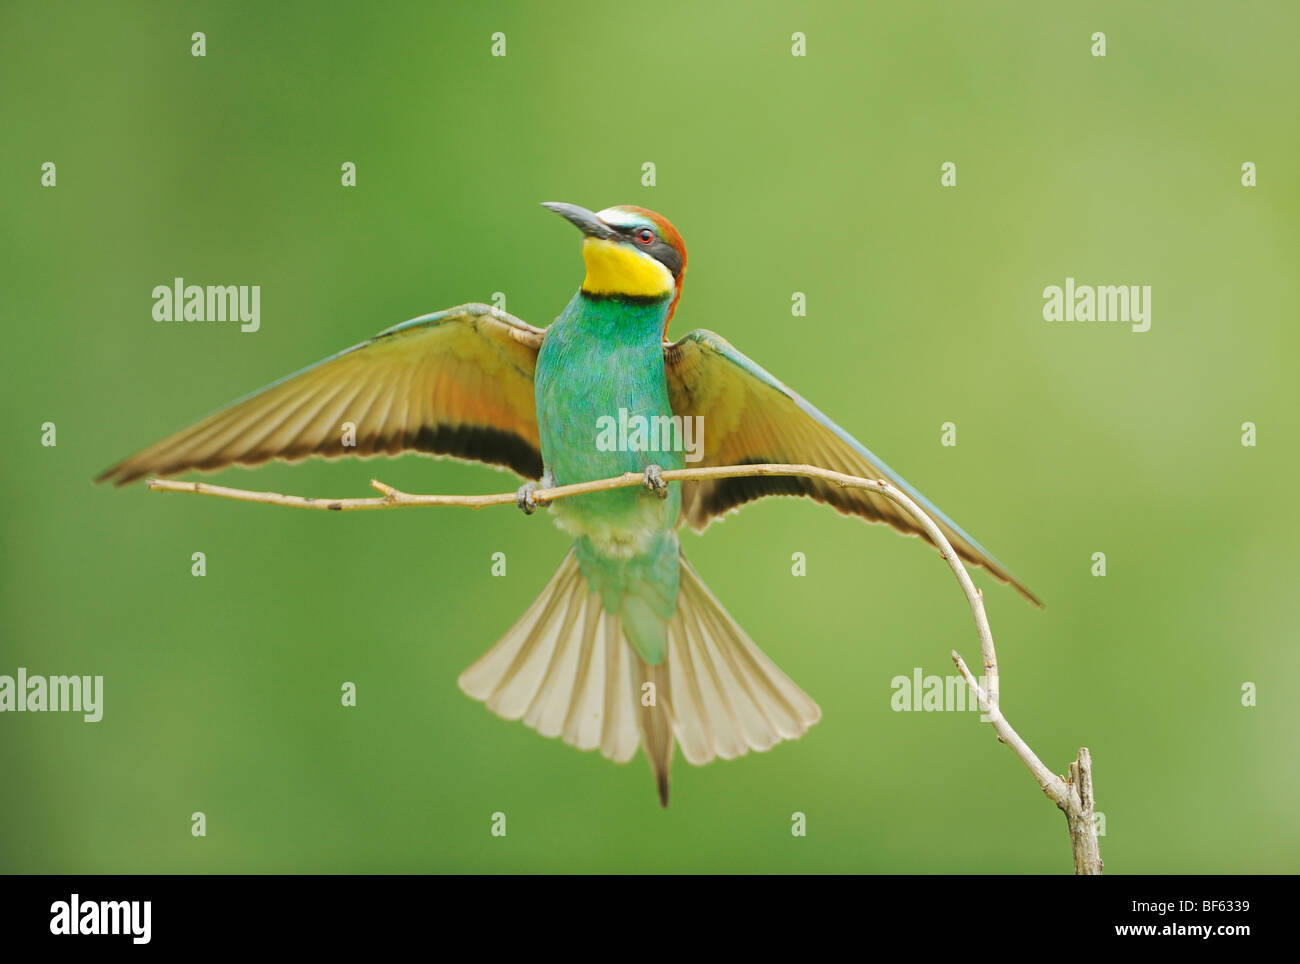 European Bee-eater (Merops apiaster), adult landing, Hungary, Europe Stock Photo